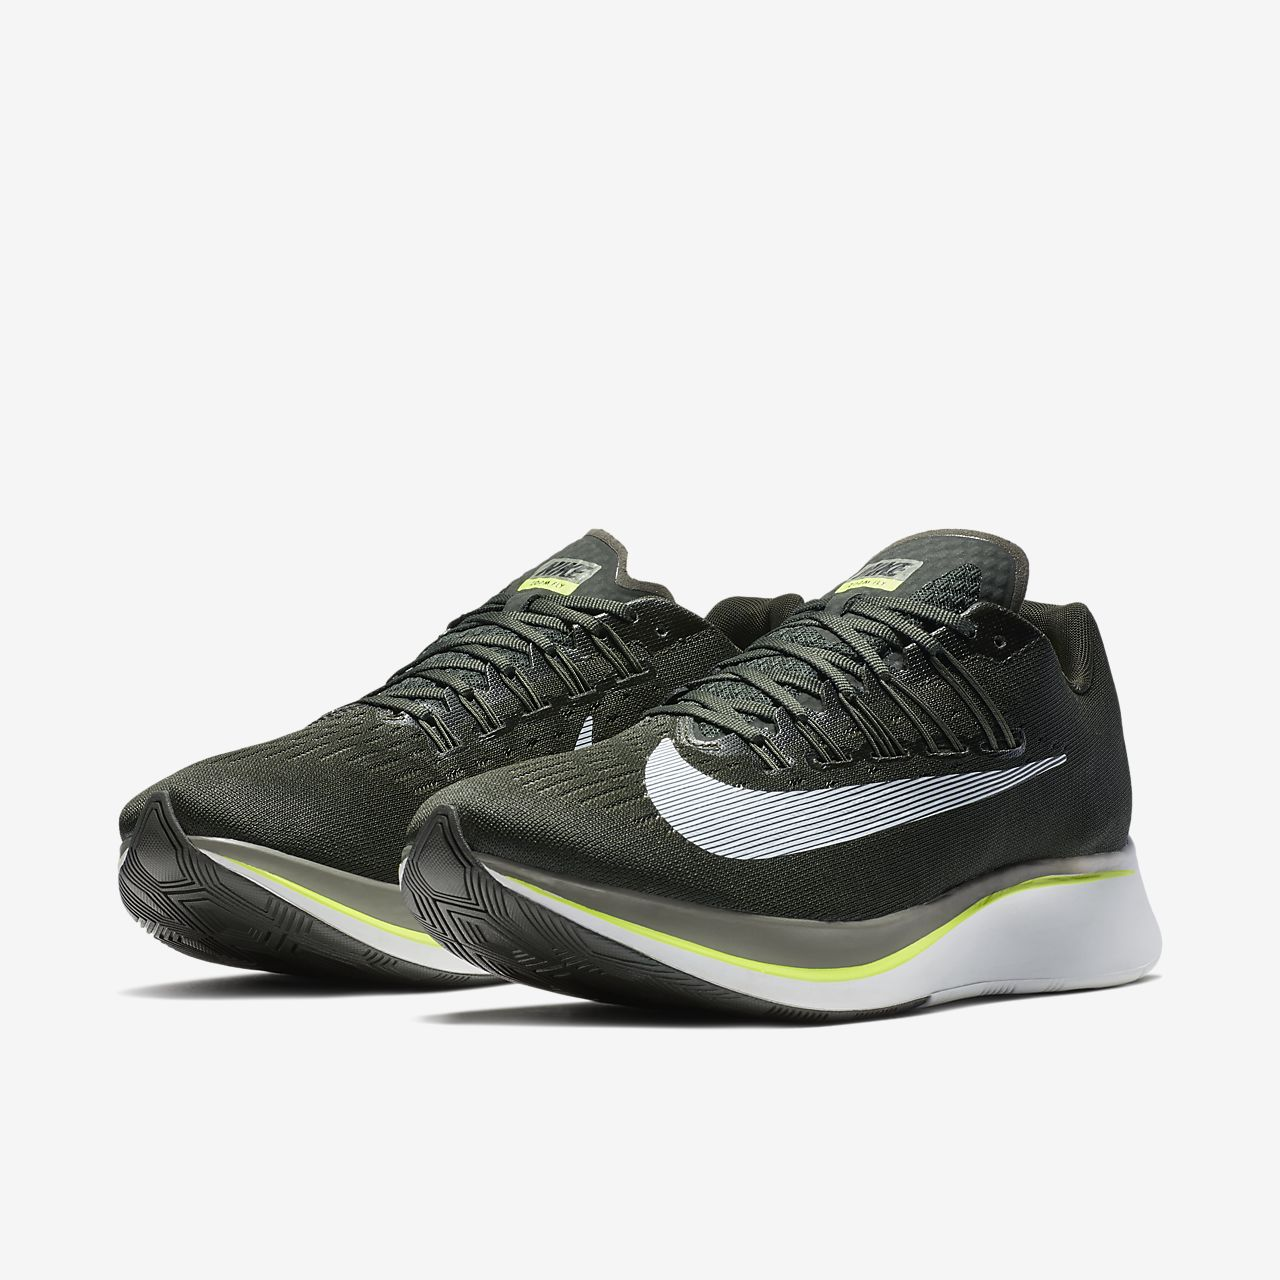 ZOOM FLY - Laufschuh Neutral - sequoia/medium olive/dark stucco/white